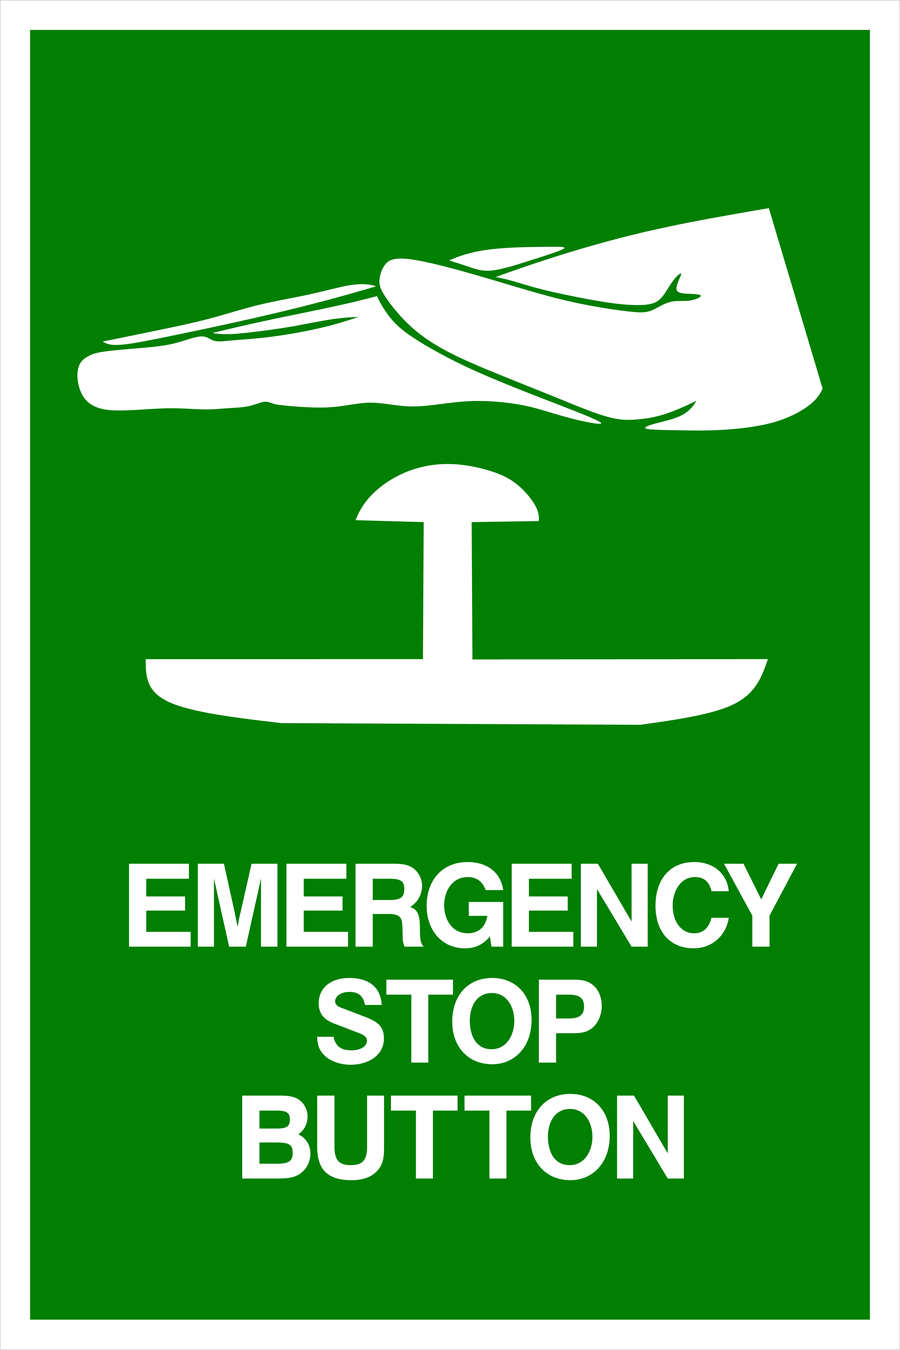 Emergency Stop Button Symbol